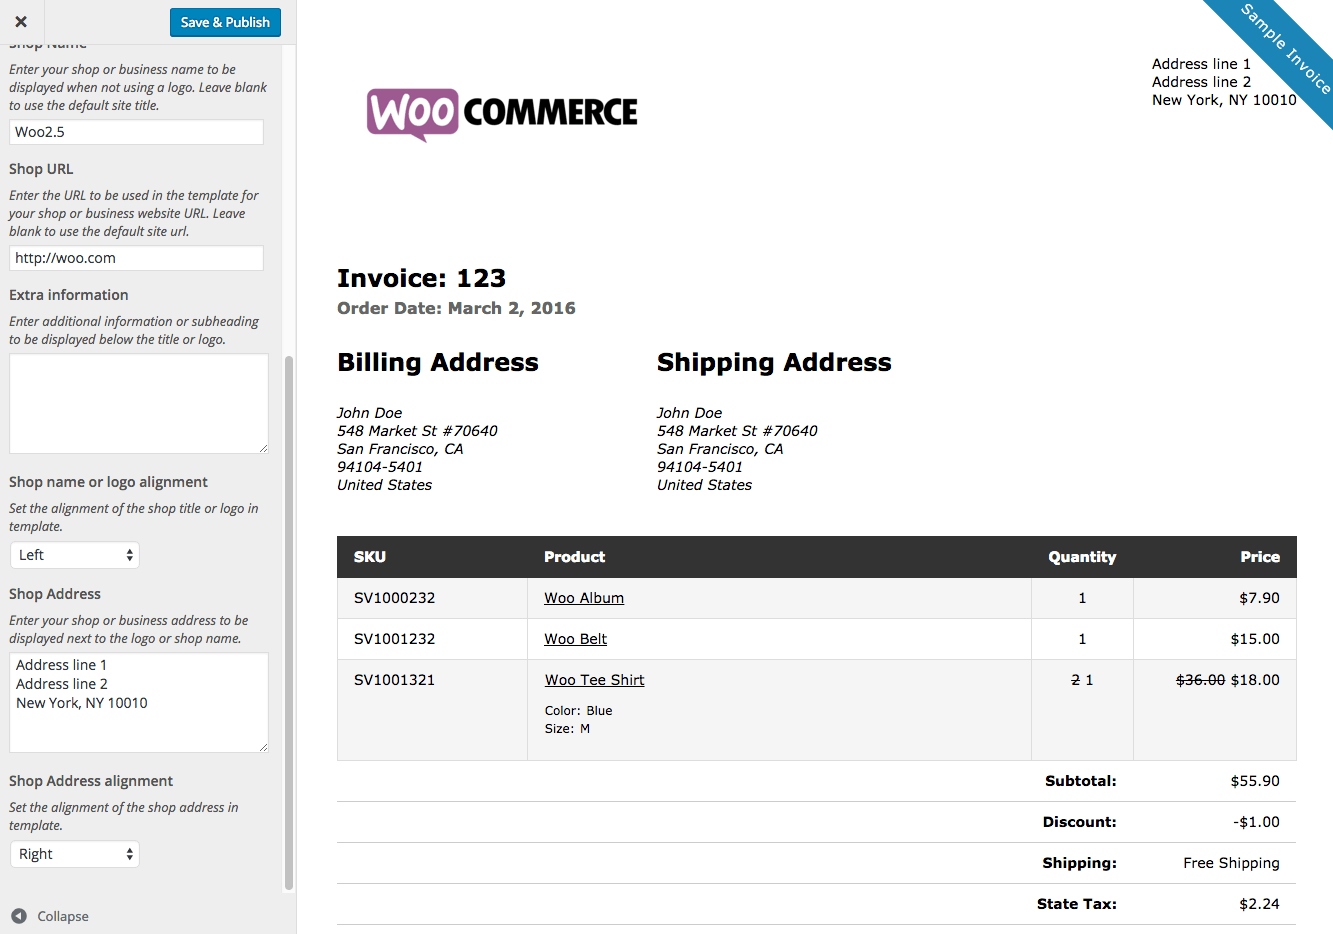 Ediblewildsus  Remarkable Print Invoices Amp Packing Lists  Woocommerce With Great Woocommerce Print Invoices  Packing Lists Customizer With Archaic Healthy Receipts Also How Long To Save Receipts In Addition Receipt For Food And Tax Deductions Without Receipts As Well As Best Receipt Scanner Organizer Additionally Receipt Of Documents From Woocommercecom With Ediblewildsus  Great Print Invoices Amp Packing Lists  Woocommerce With Archaic Woocommerce Print Invoices  Packing Lists Customizer And Remarkable Healthy Receipts Also How Long To Save Receipts In Addition Receipt For Food From Woocommercecom